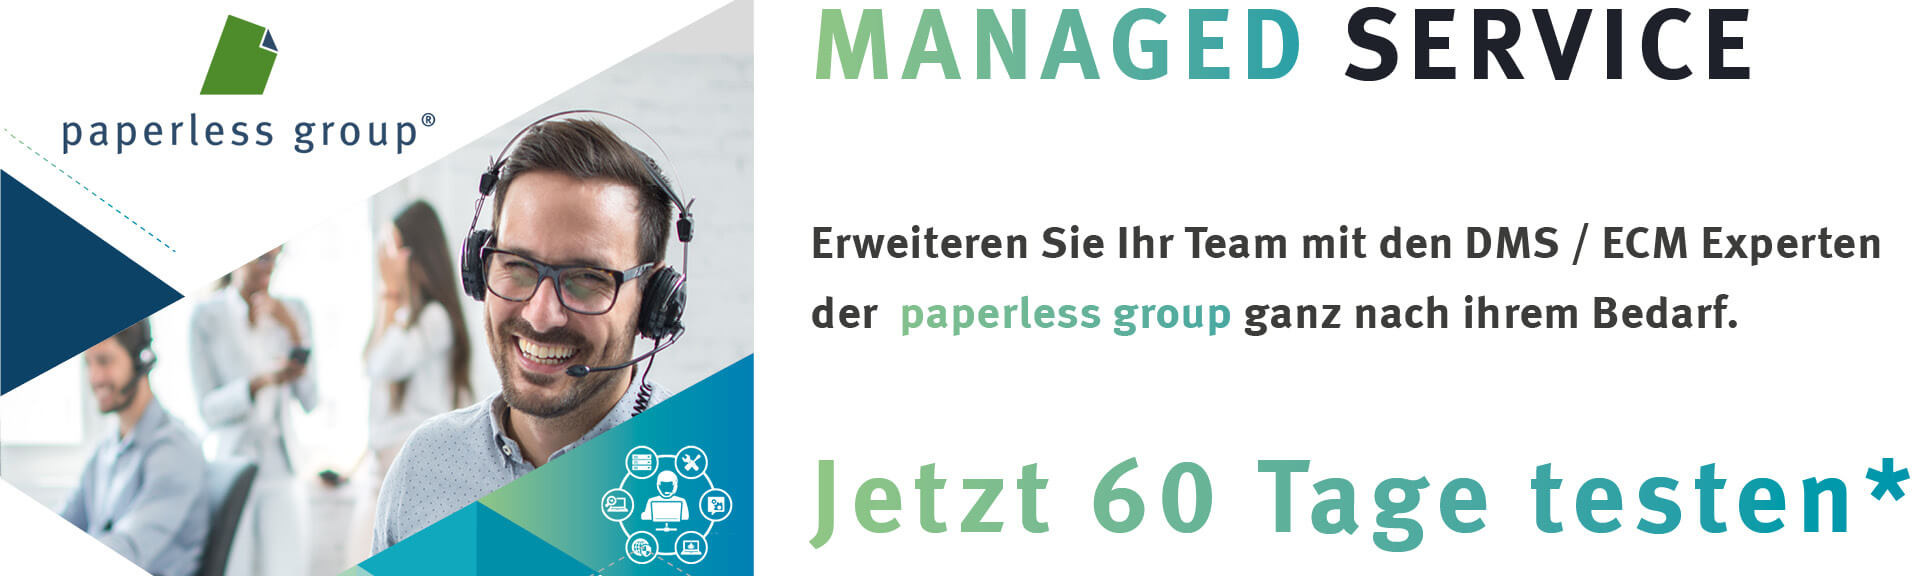 managed-Service-testangebot2monate-banner